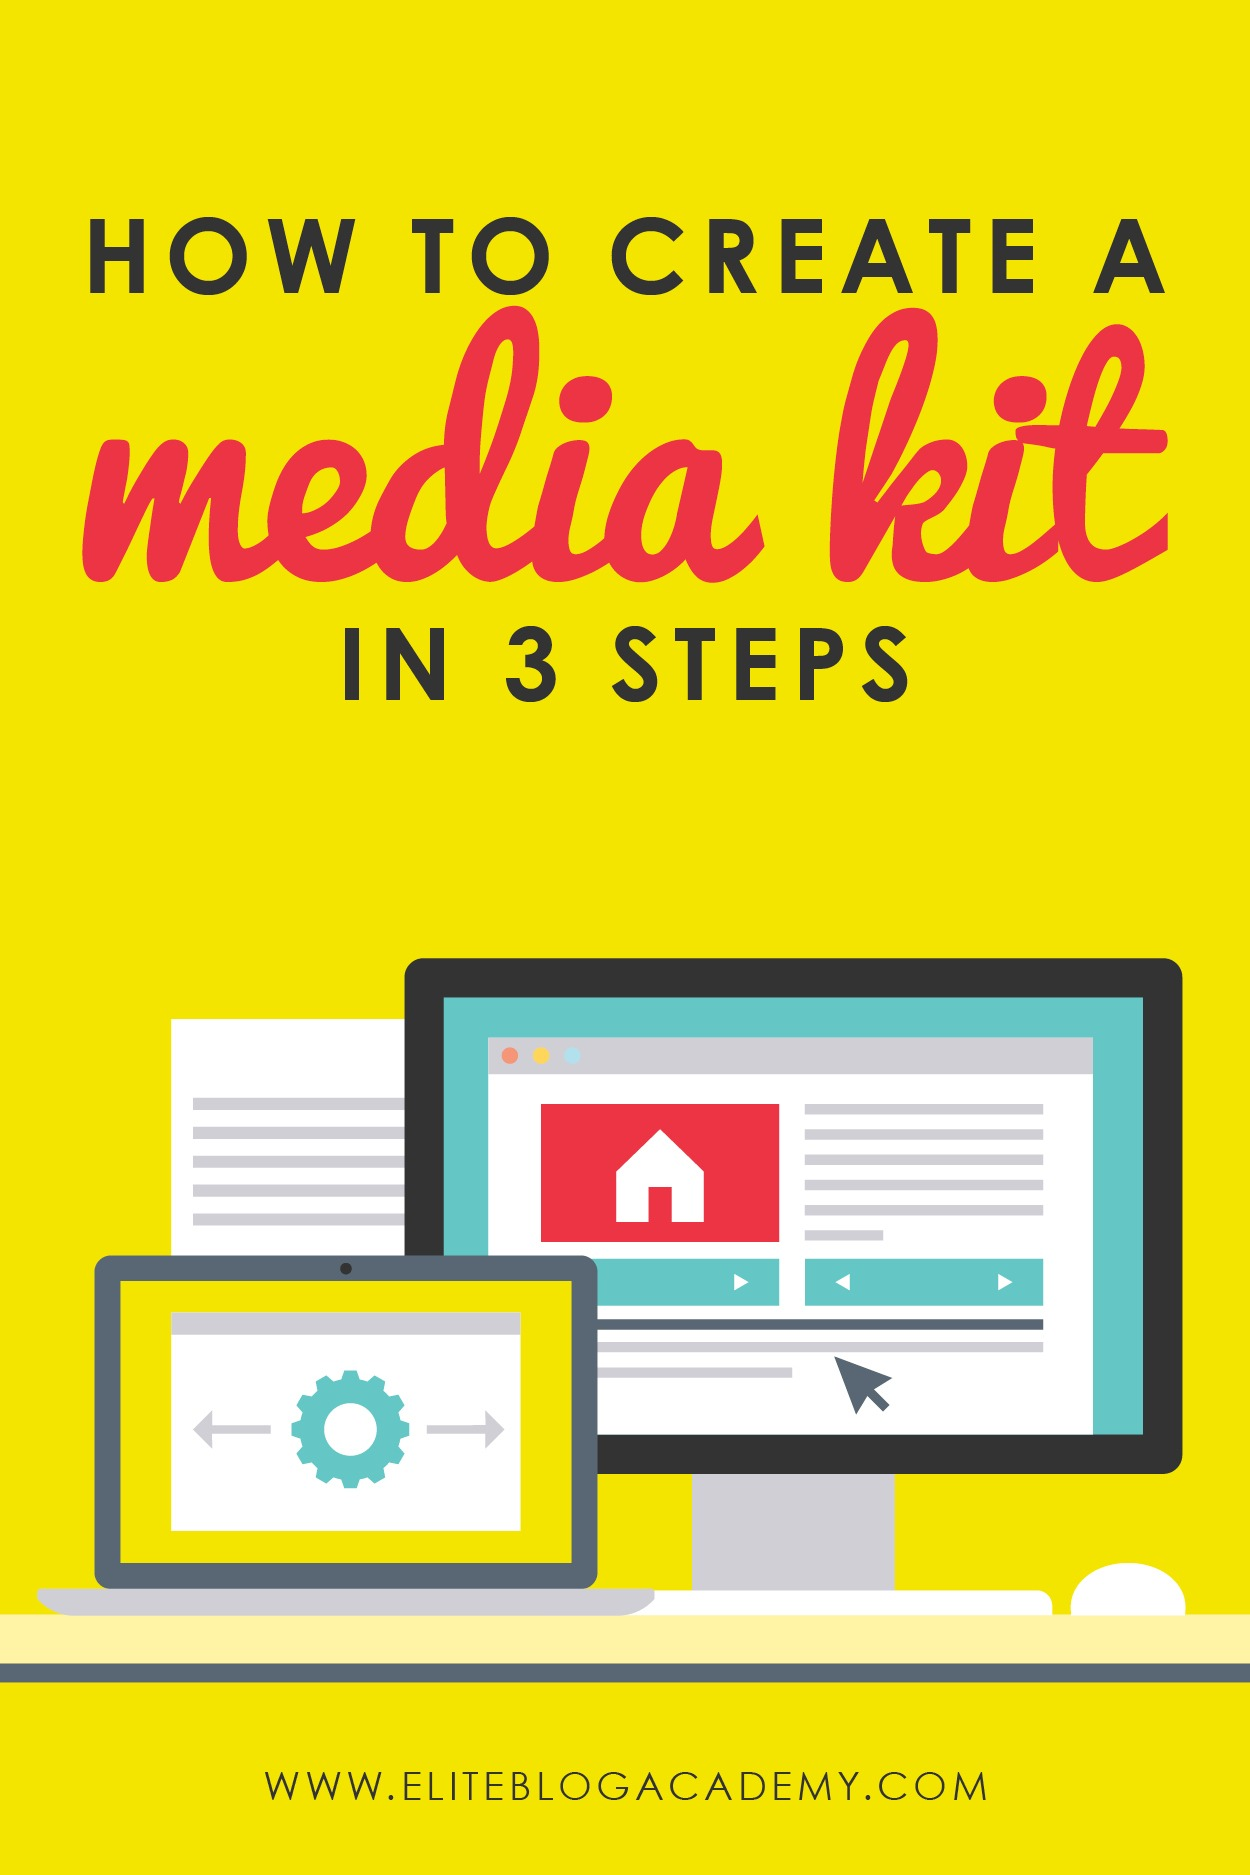 Ready to start treating your blog as business and begin working with brands? Having a media kit will be super important and may seem overwhelming, but in this post we are teaching you how to create a media kit in 3 easy steps! #eliteblogacademy #bloggingtips #makemoneyblogging #makemoneyfromhome